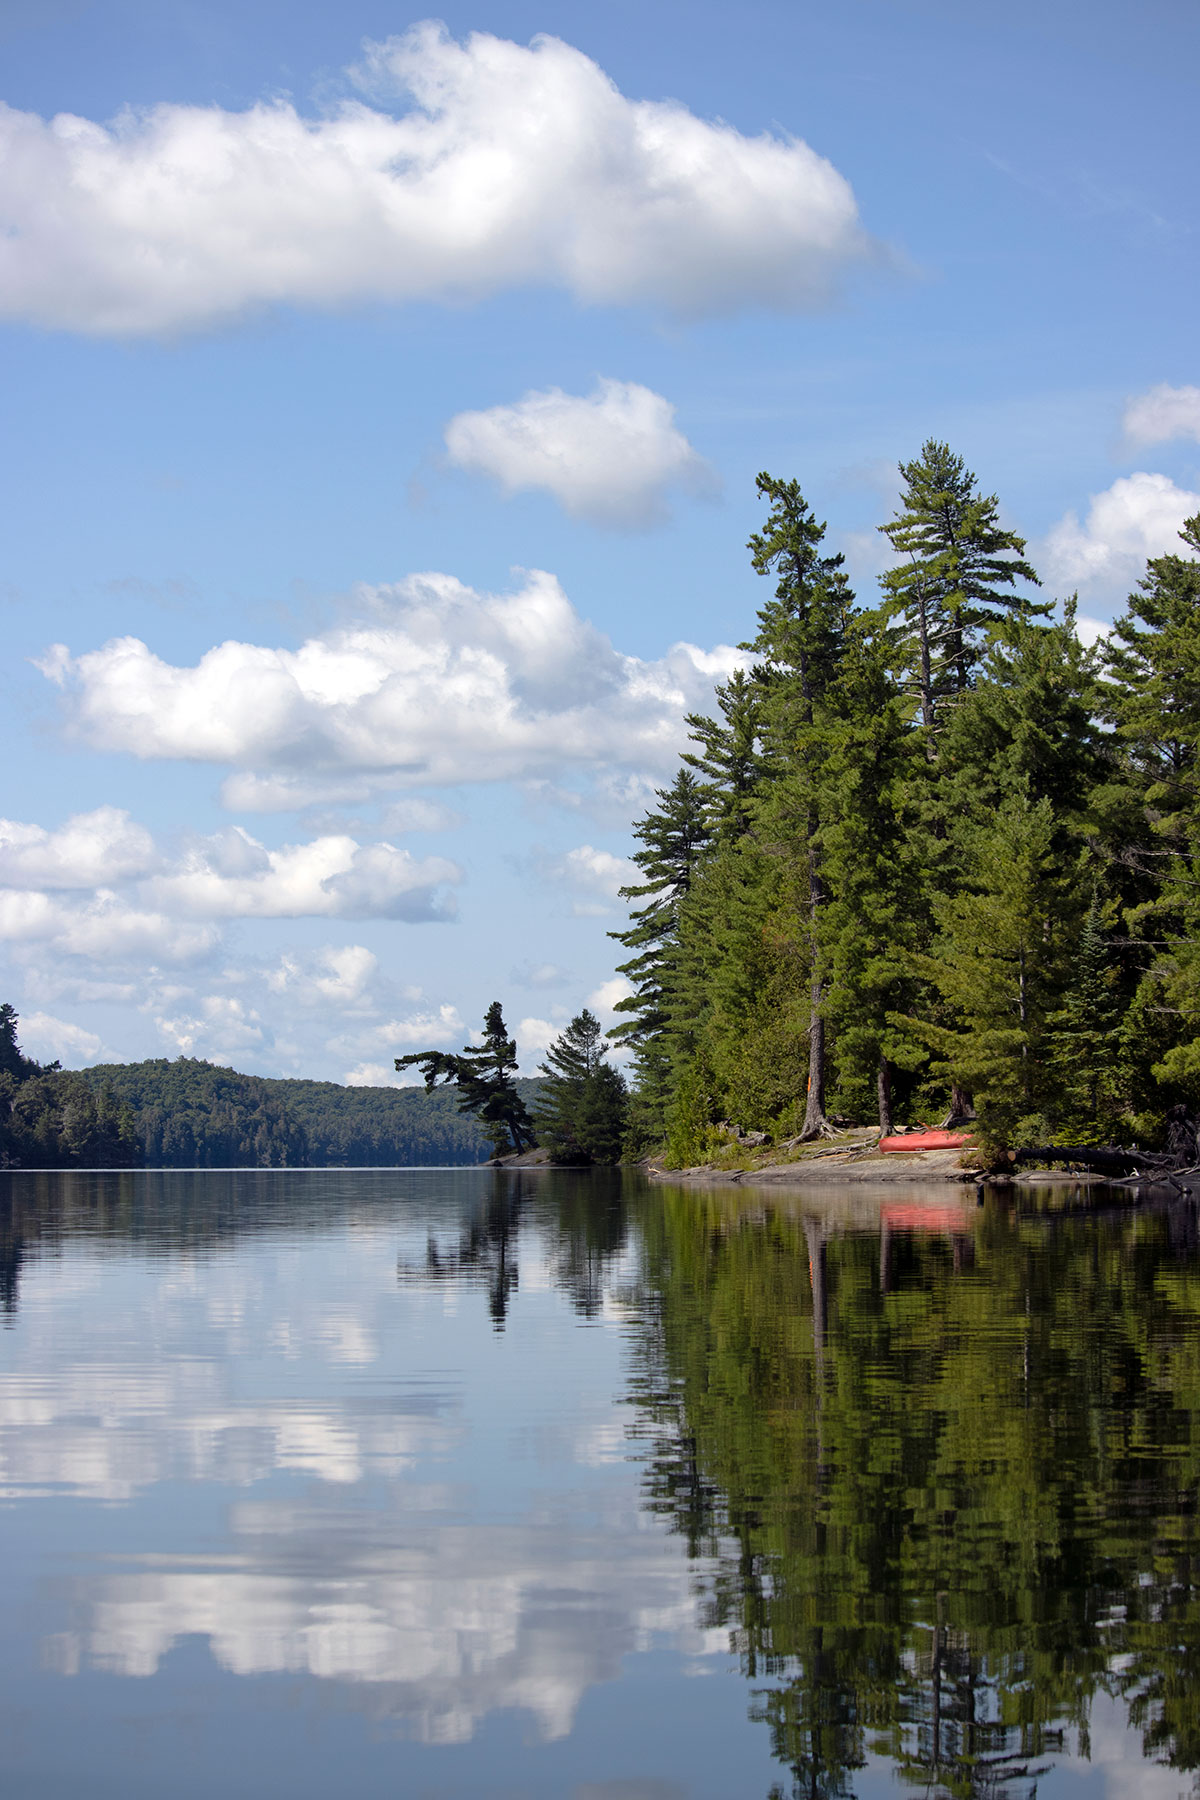 Campsite with red canoe on Ralph Bice Lake in Algonquin Park